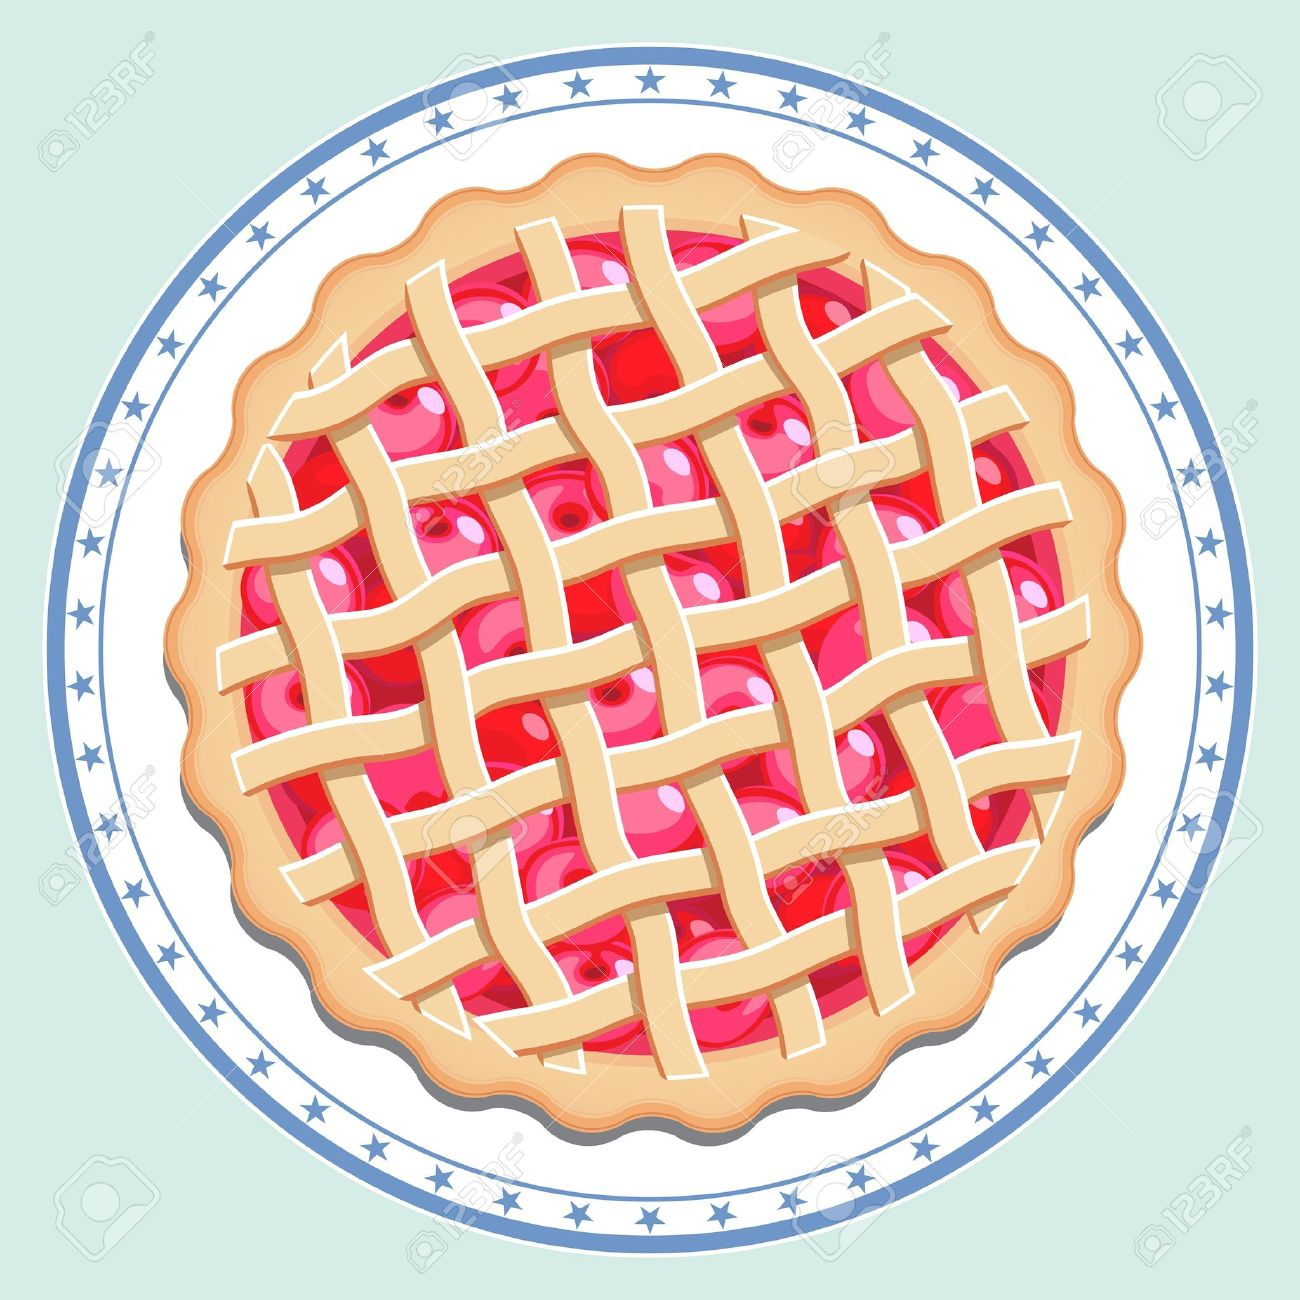 Pies clipart top view Cliparts clipart Cliparts Apple tart